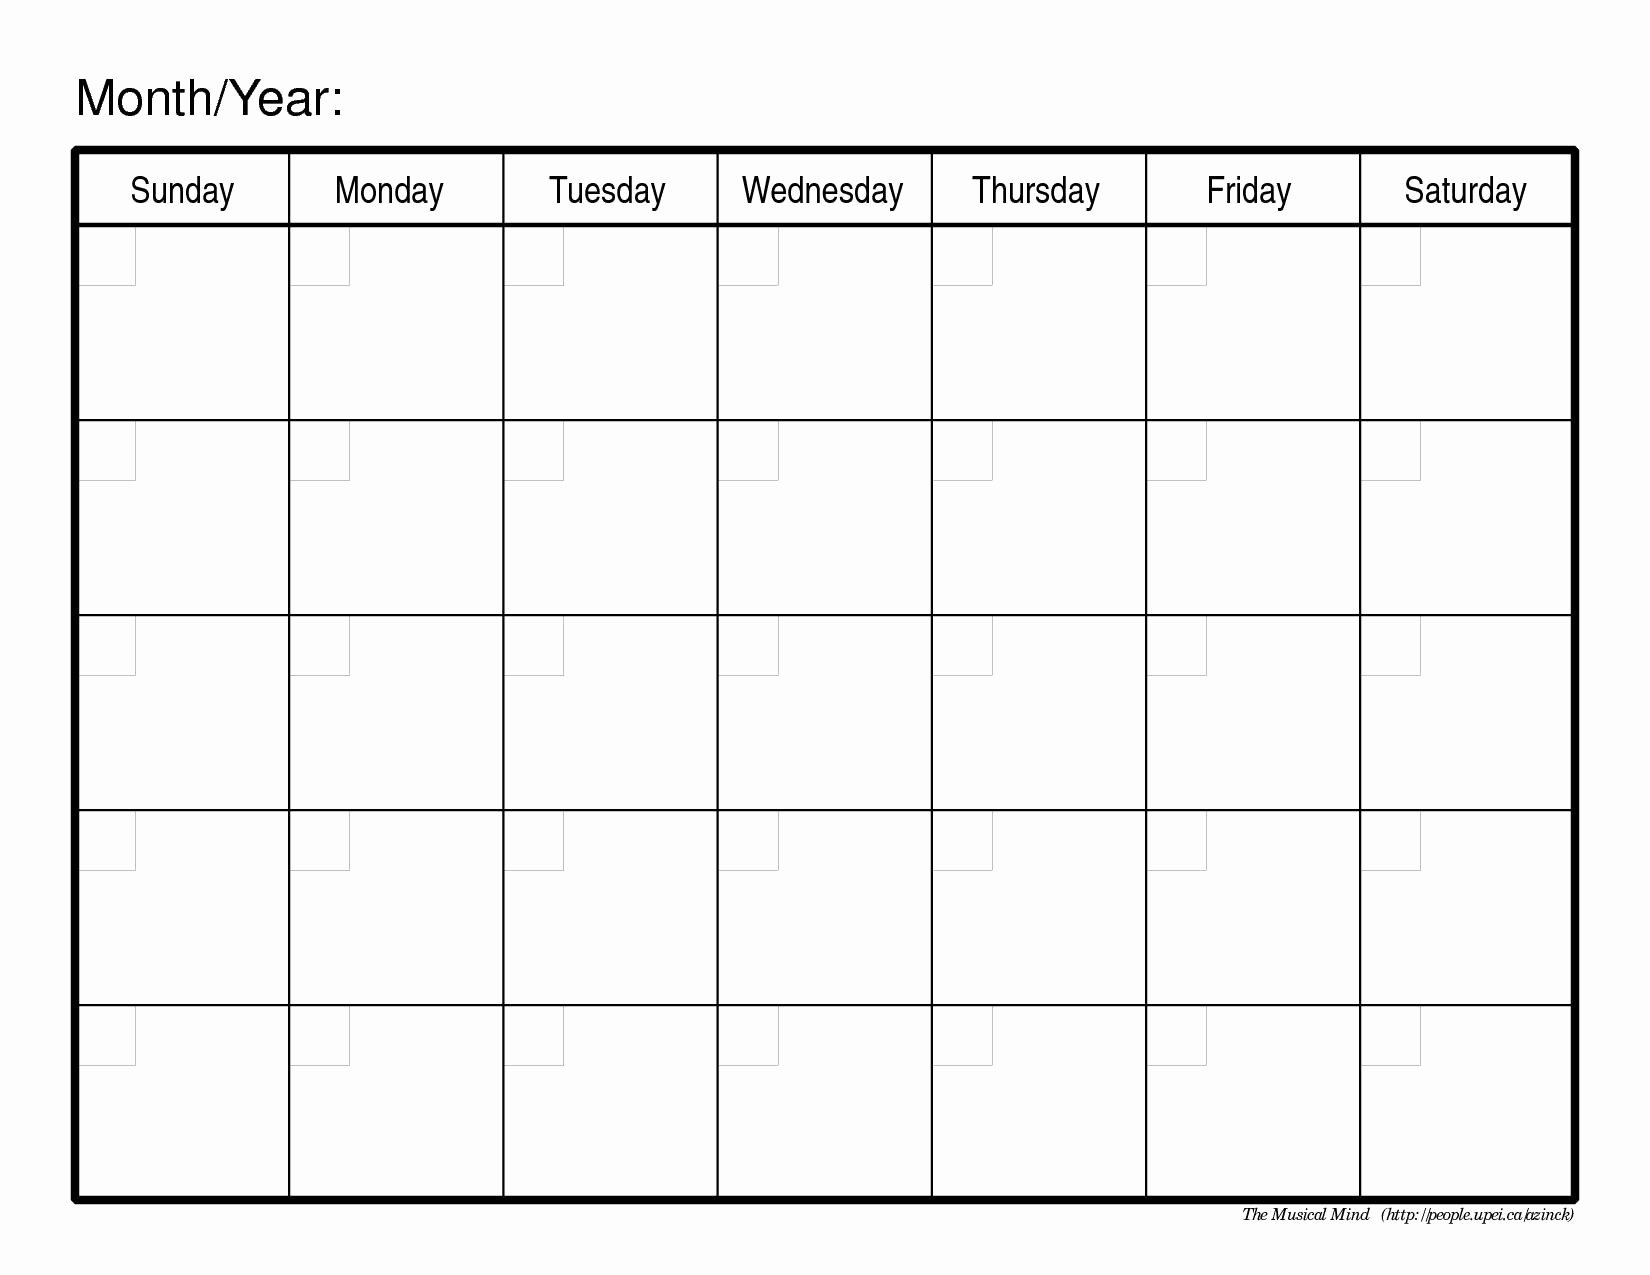 Free Calendars To Print Without Downloading - Template Fill Out A Calender Online And Print Out